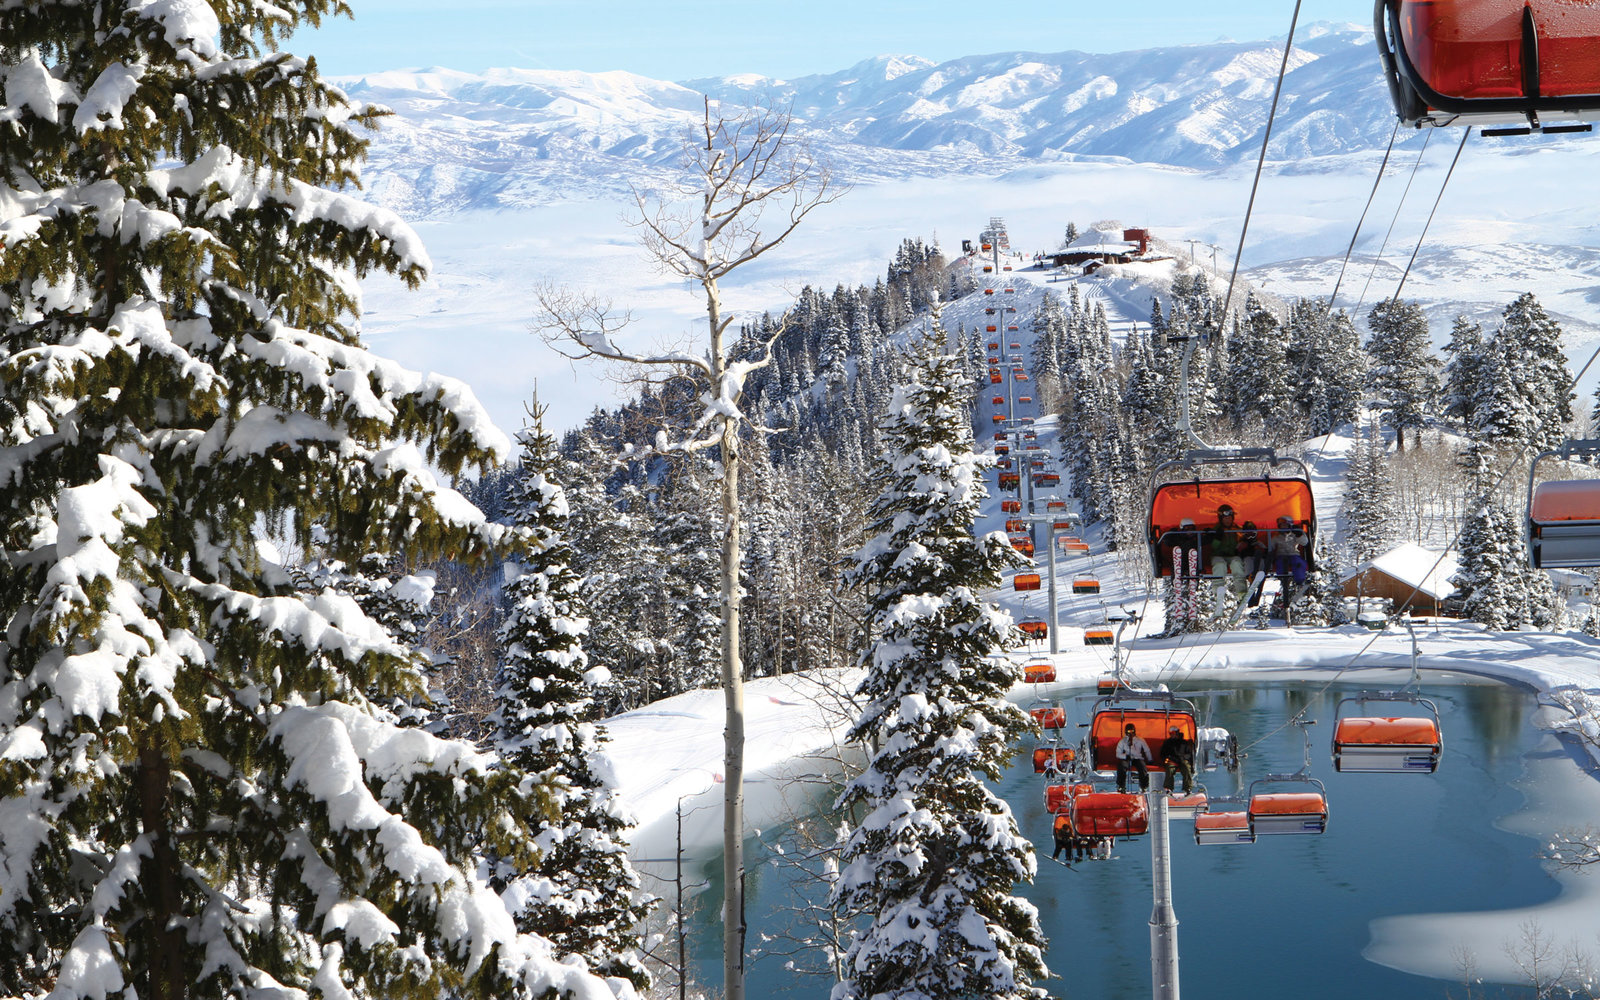 Vail Acquires Park City Mountain Resort, Plans Country's Largest Ski Area